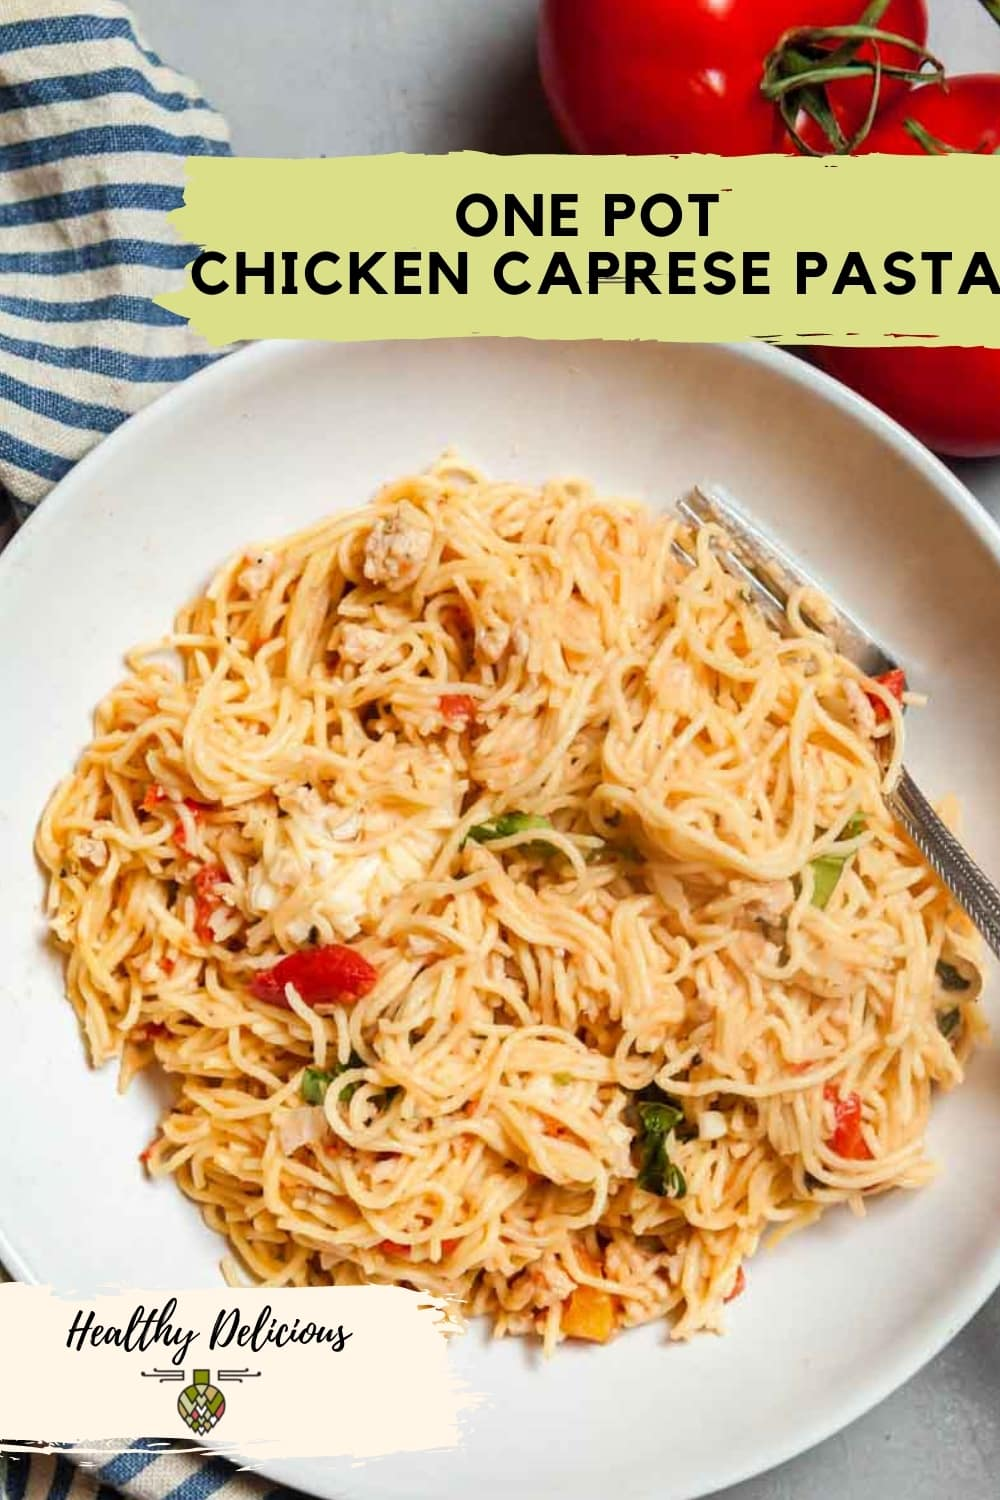 Fuss-free one pot pasta is a meal the whole family will love! This 20-minute recipe is inspired by caprese salad, with fire-roasted tomatoes, mozzarella, and plenty of fresh basil. You'll look forward to eating it all summer long! via @HealthyDelish